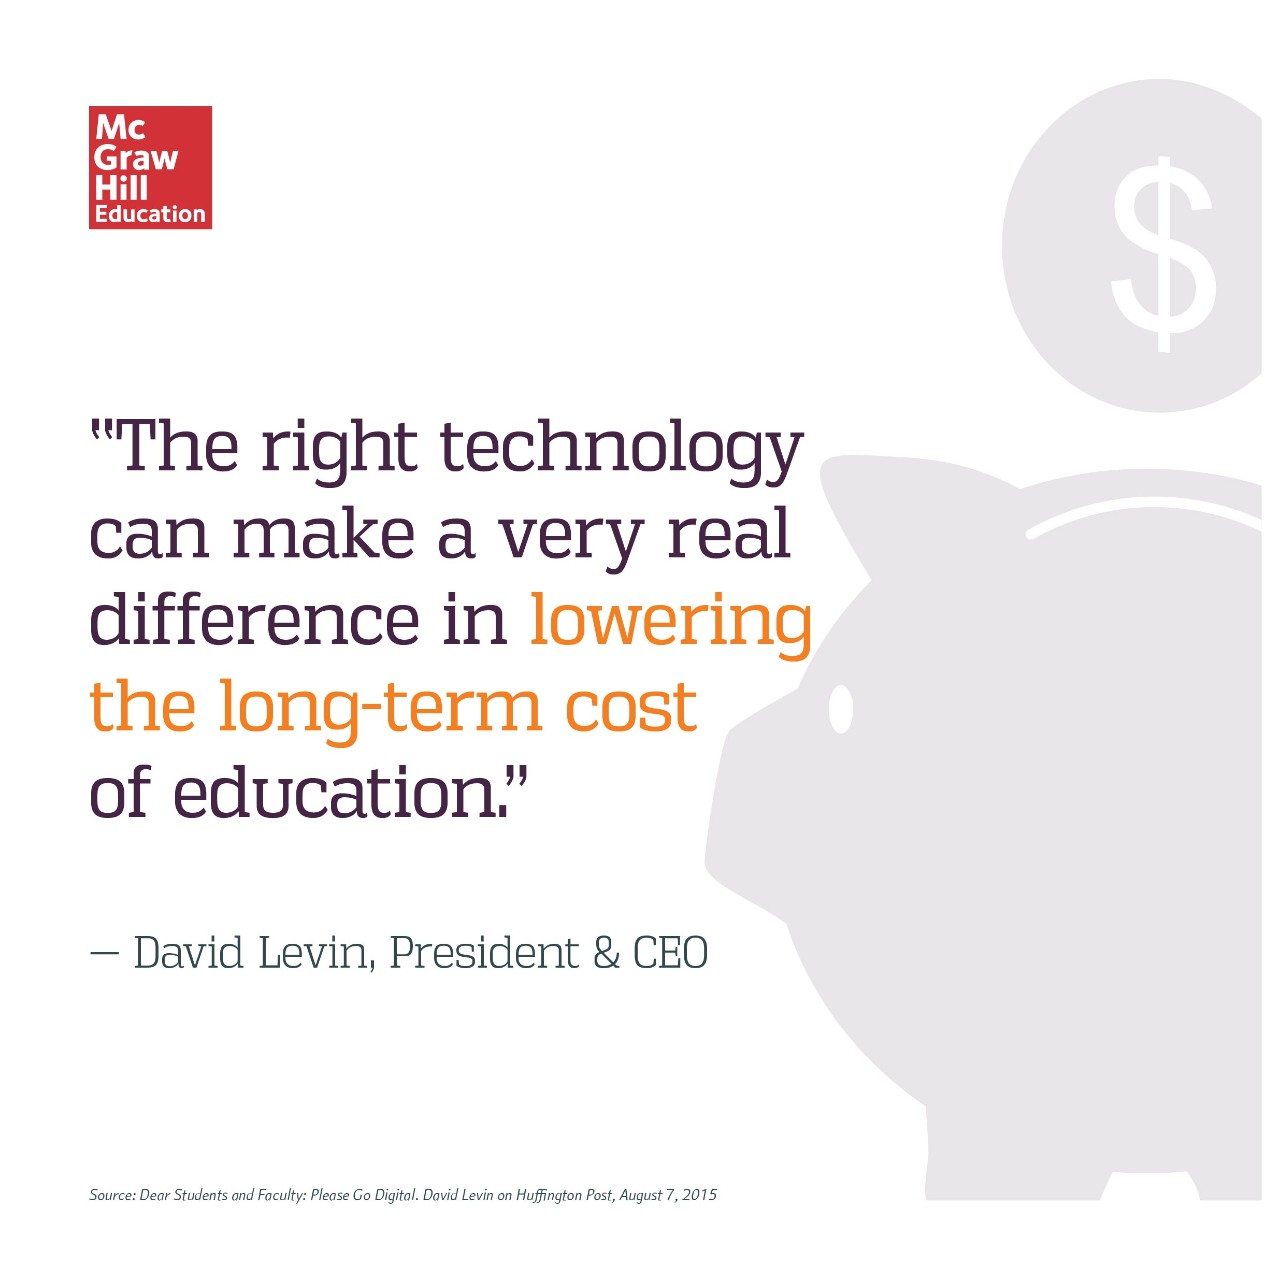 student-faculty-please-go-digital-david-levin-quote